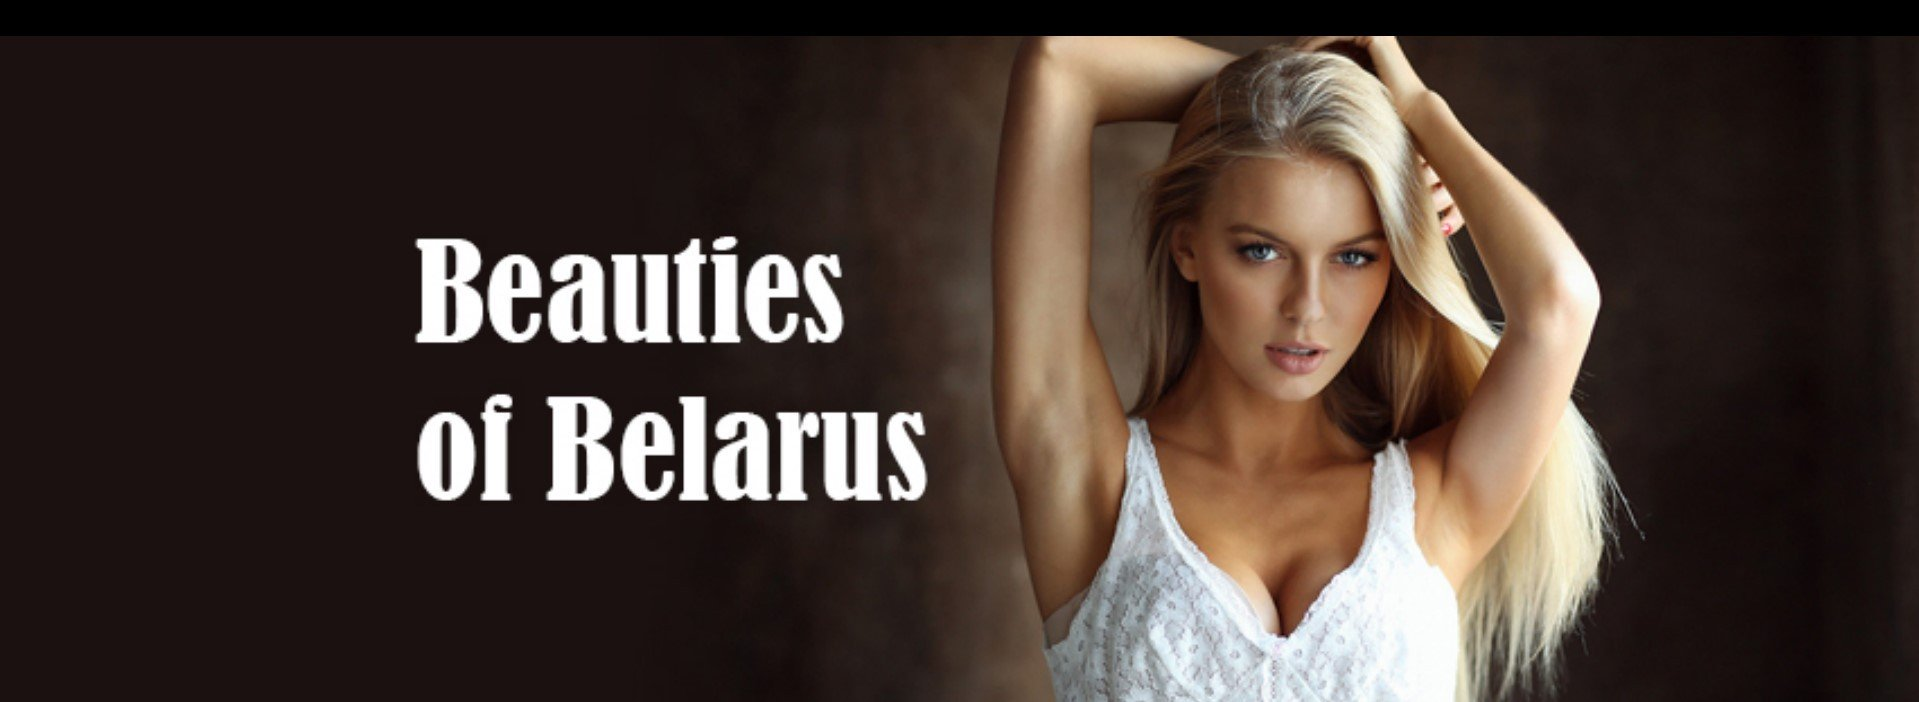 Beauties of Belarus